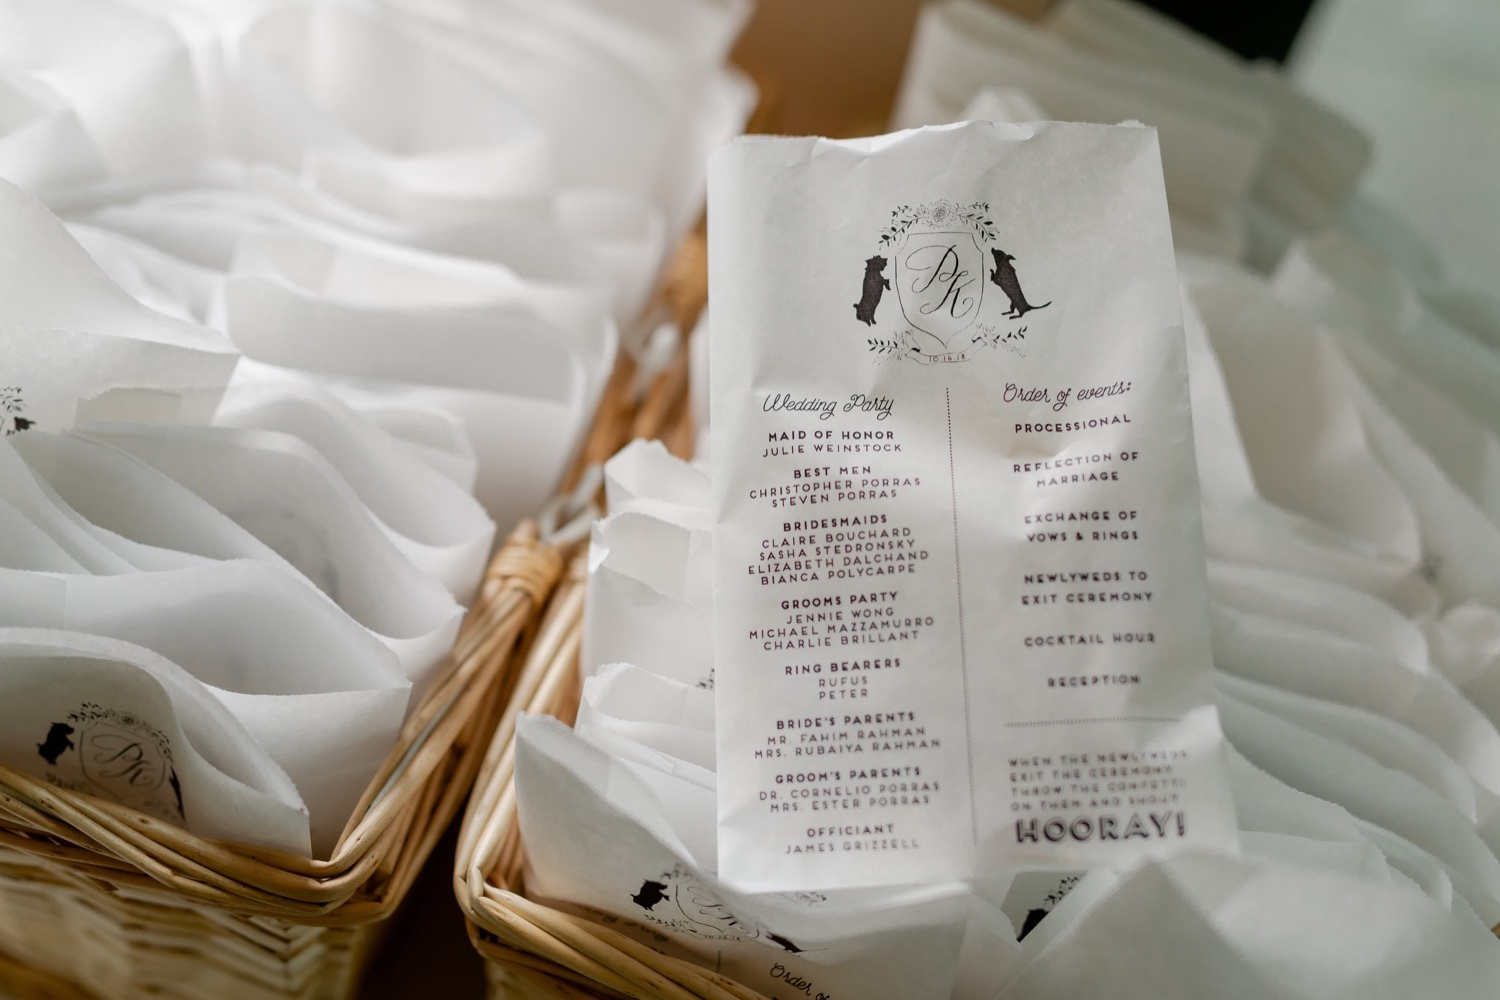 Wedding items for guests at the Tappan Hill Mansion.